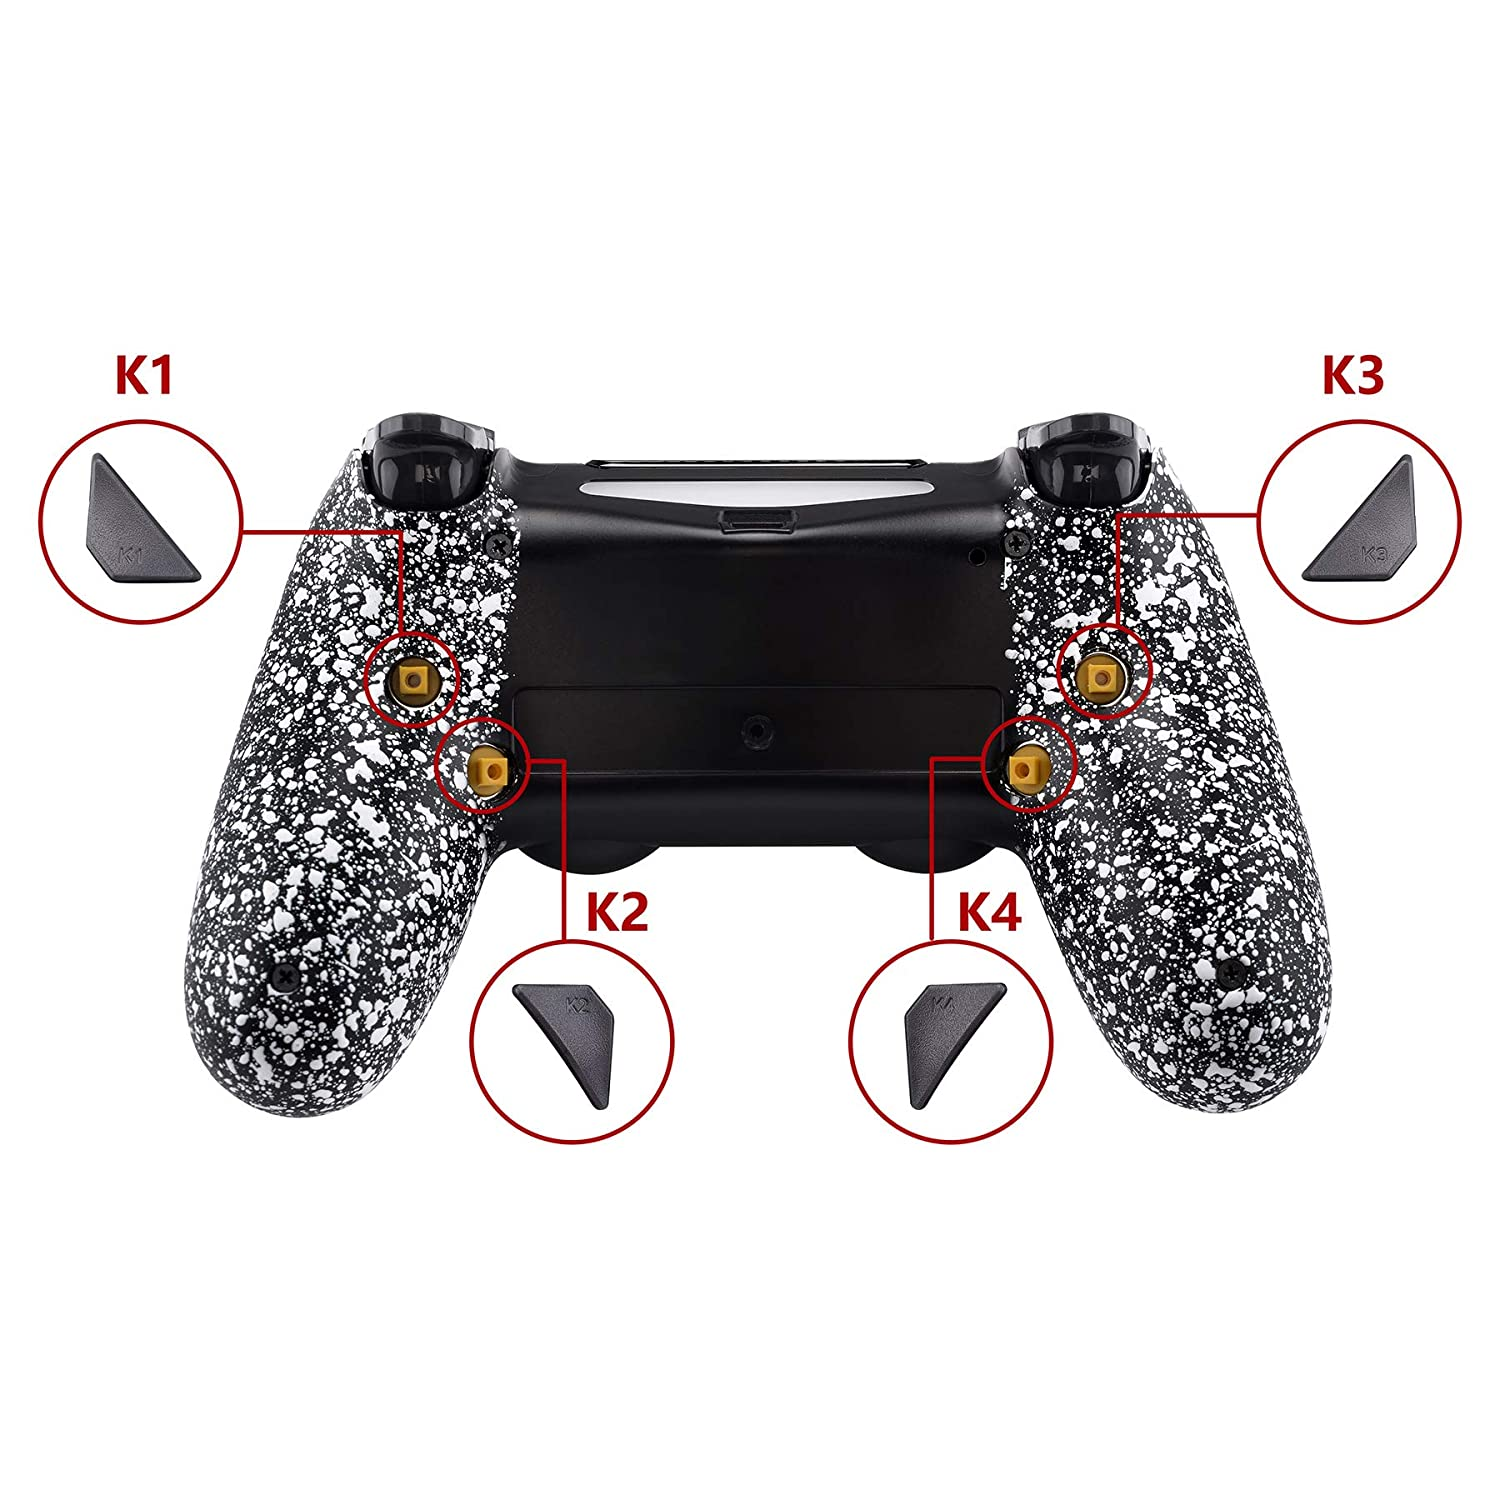 Compatible with JDM-040//050//055-100$ Cash Money Dollar eXtremeRate Dawn Programable Remap Kit for PS4 Controller with Mod Chip /& Redesigned Back Shell /& 4 Back Buttons